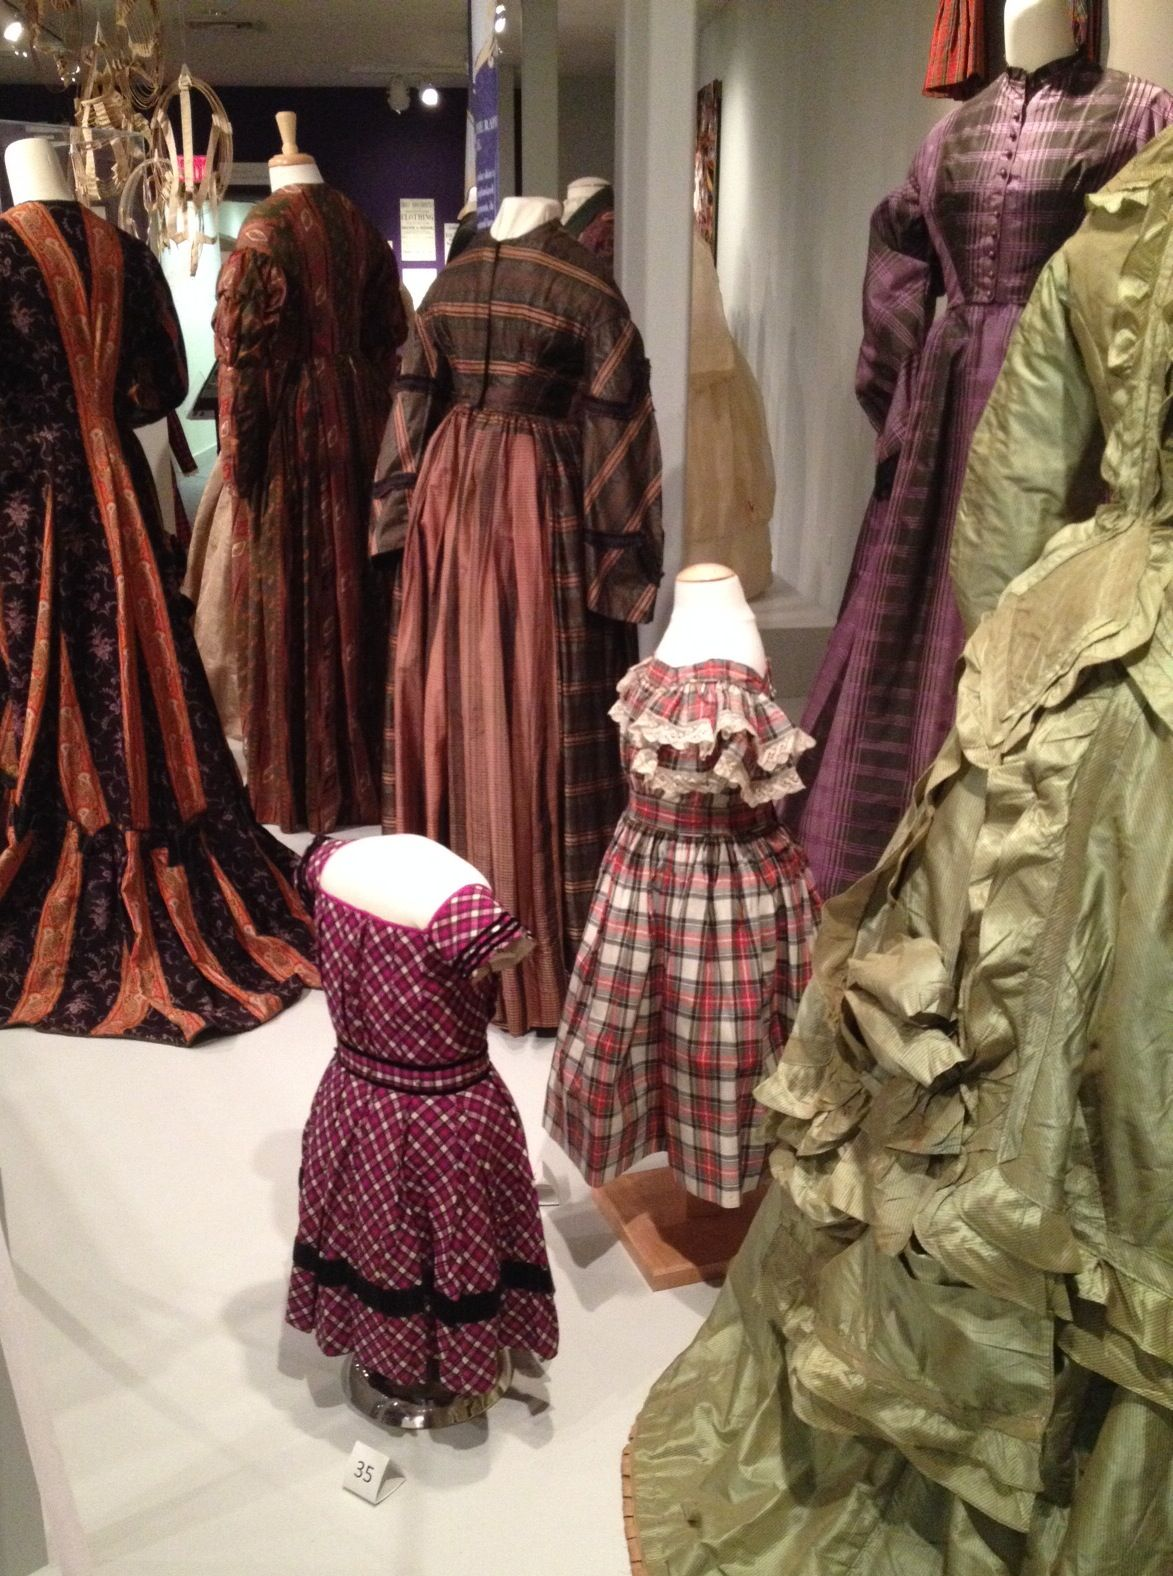 At 'Profiles: Chester County Clothing of the 1800s' you will be warmly greeted! #chestercountyhistoricalsociety